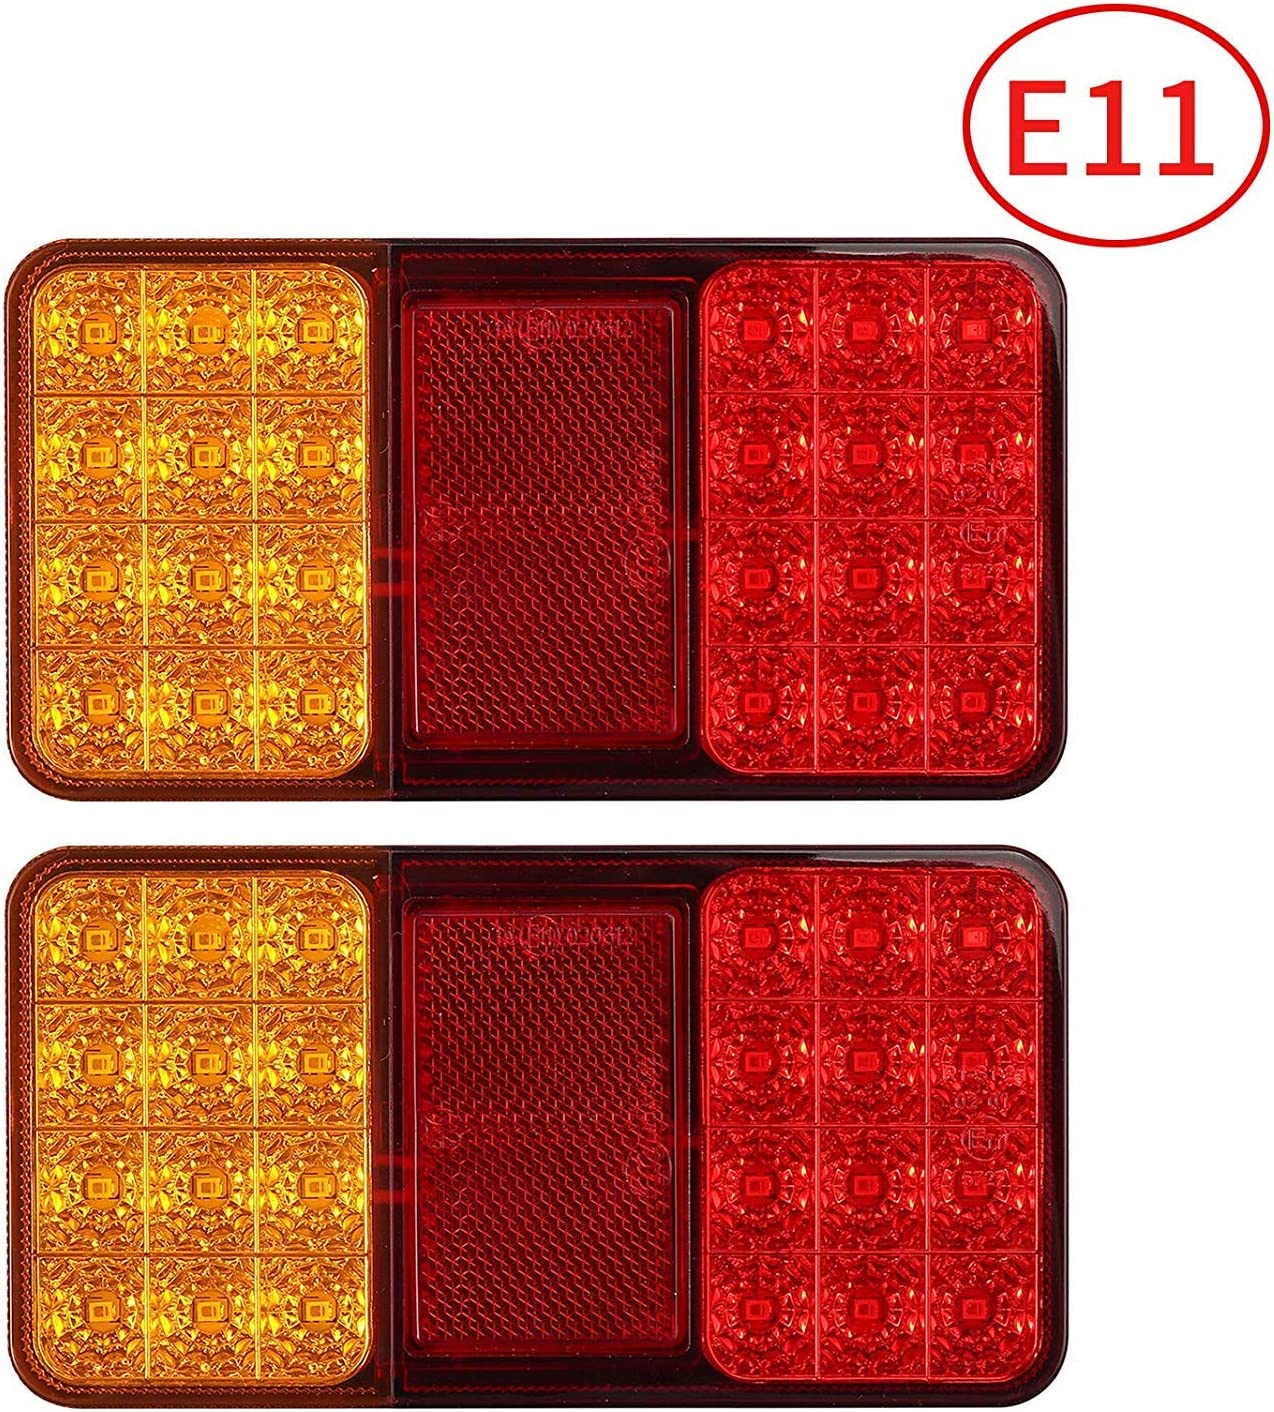 2x 12V 24V 24LED Rear Tail Stop Light Indicator Lights Trailer Caravan Van Truck